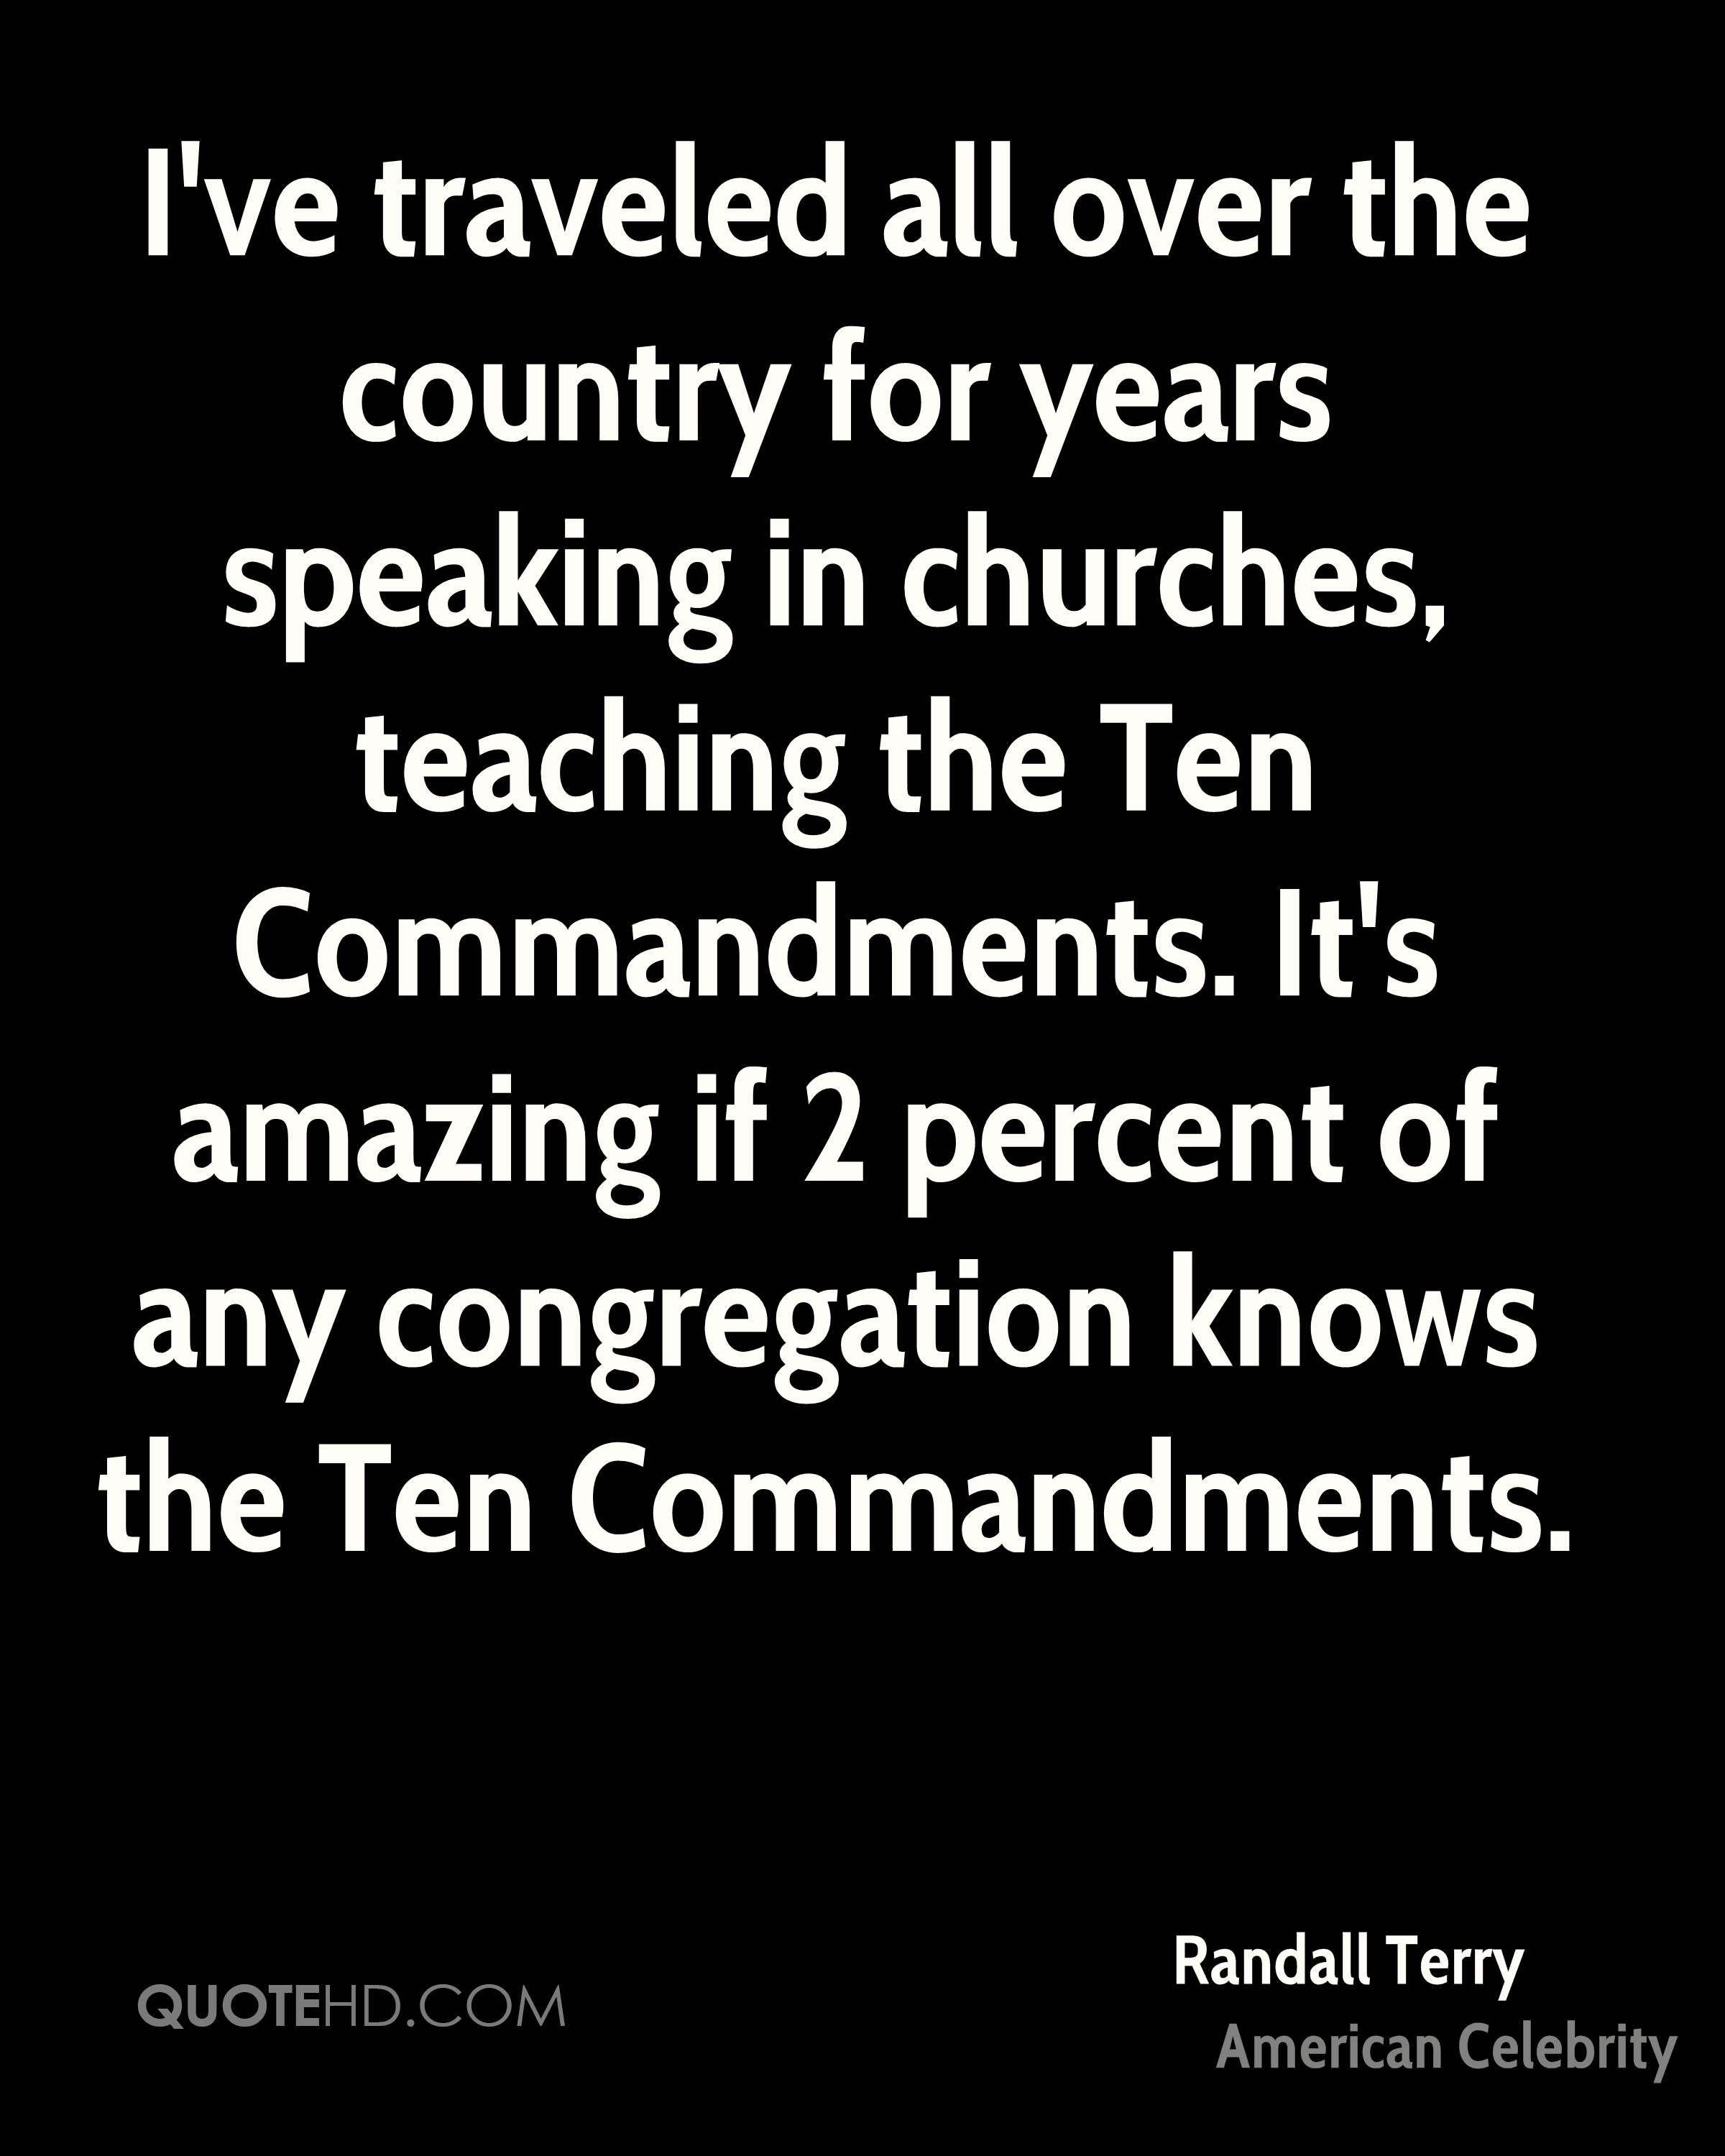 I've traveled all over the country for years speaking in churches, teaching the Ten Commandments. It's amazing if 2 percent of any congregation knows the Ten Commandments.